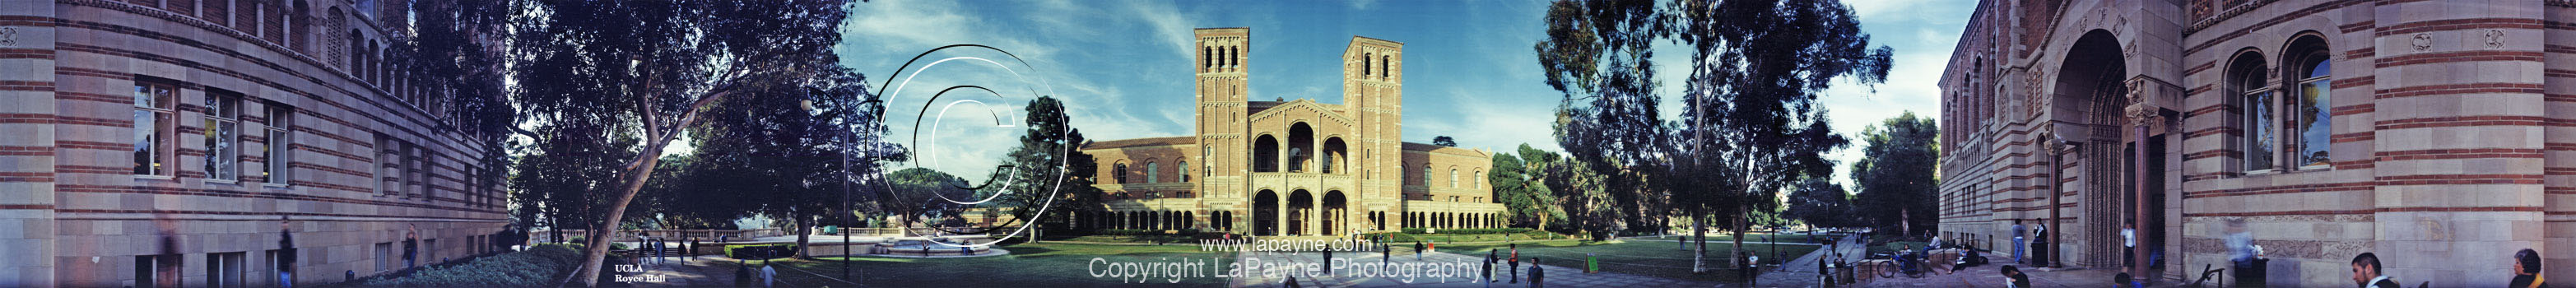 Royce Hall UCLA Panorama